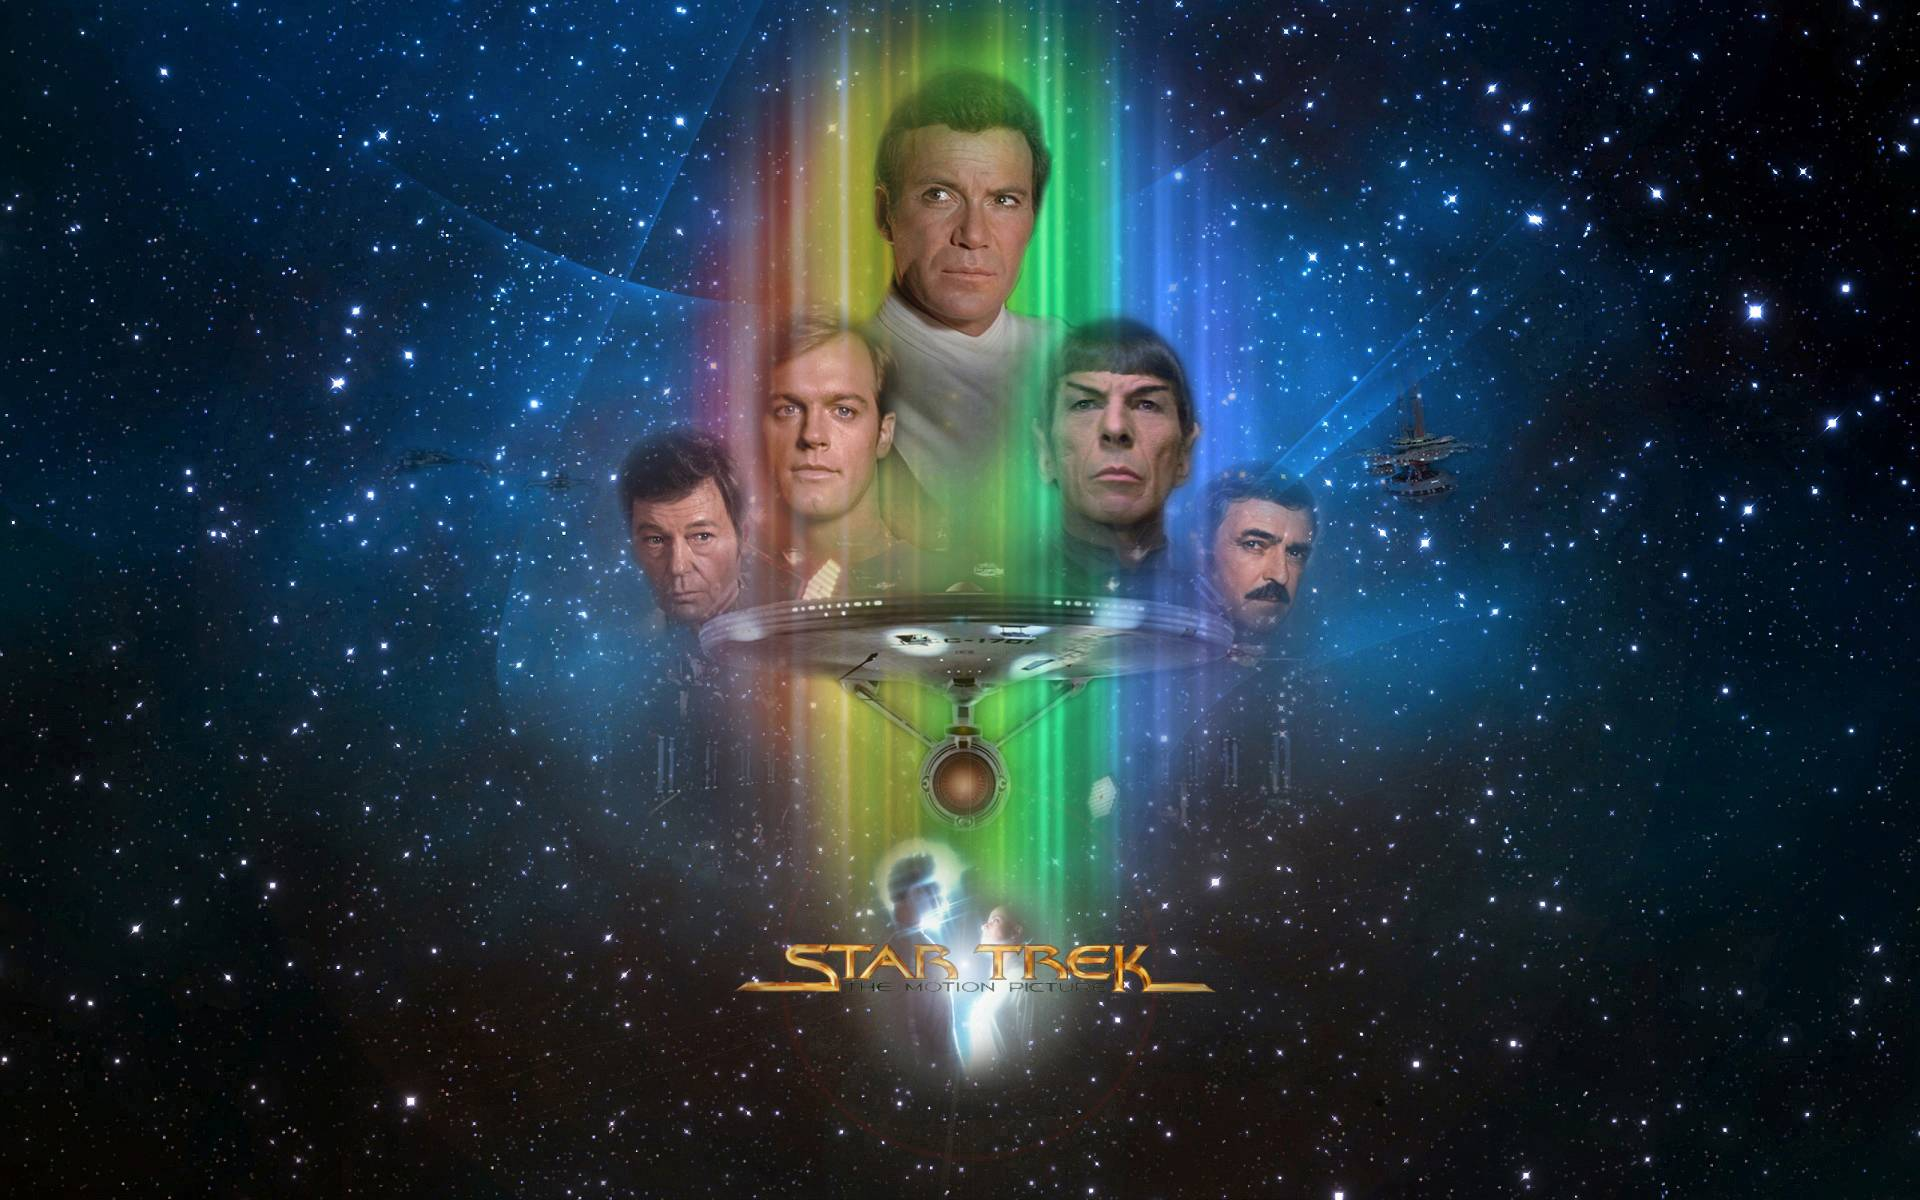 Star Trek Wallpaper For Iphone Is Cool Wallpapers